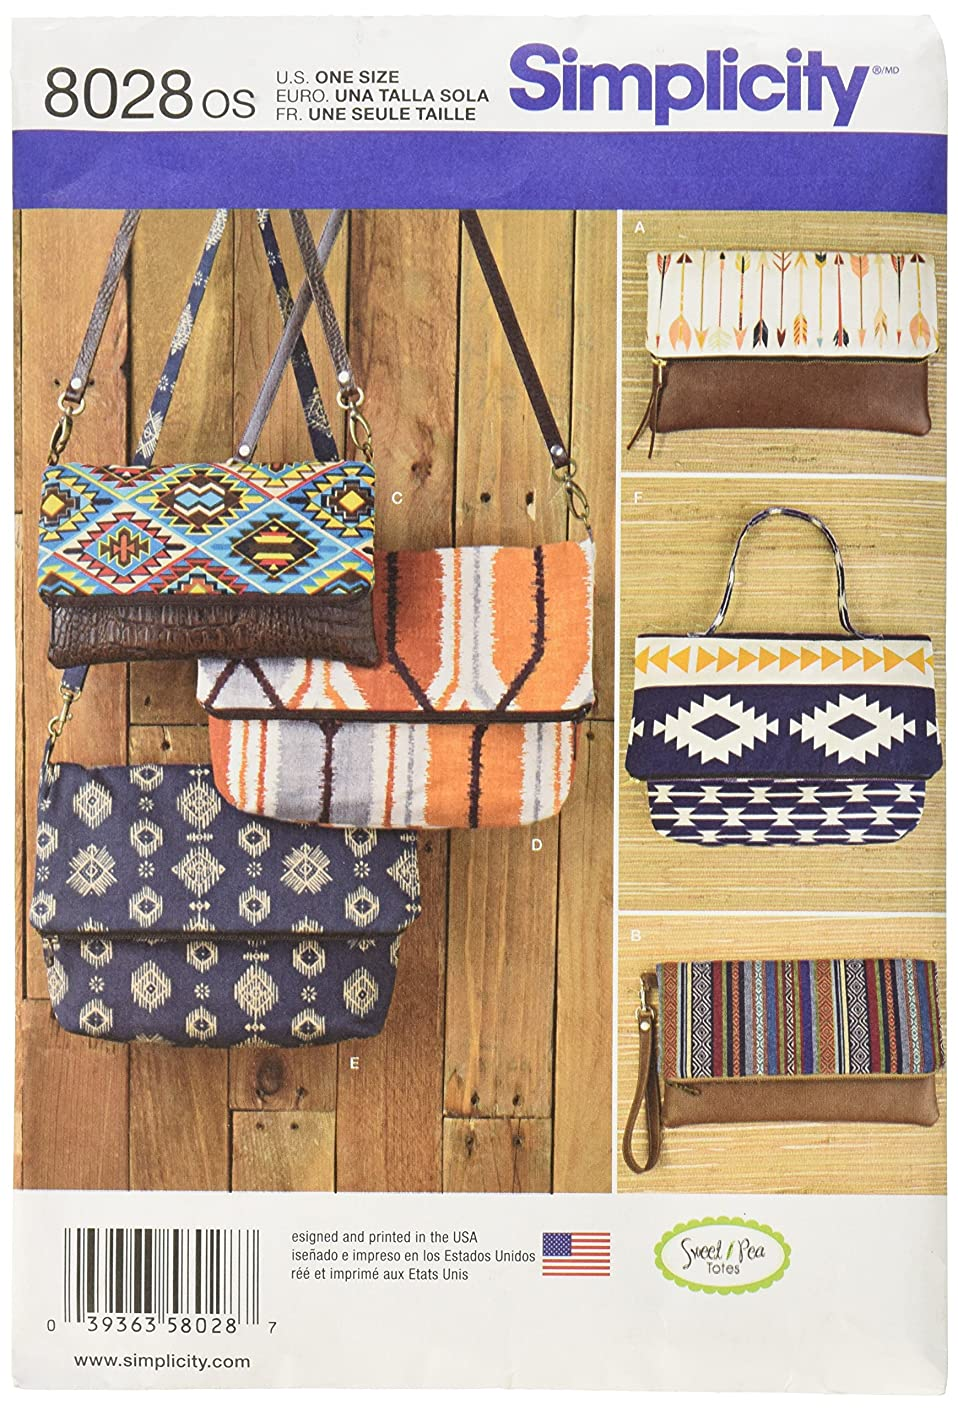 Simplicity US8028OS Patterns Clutch, Wristlet and Purse in Two Sizes Size: Os (One Size), 8028